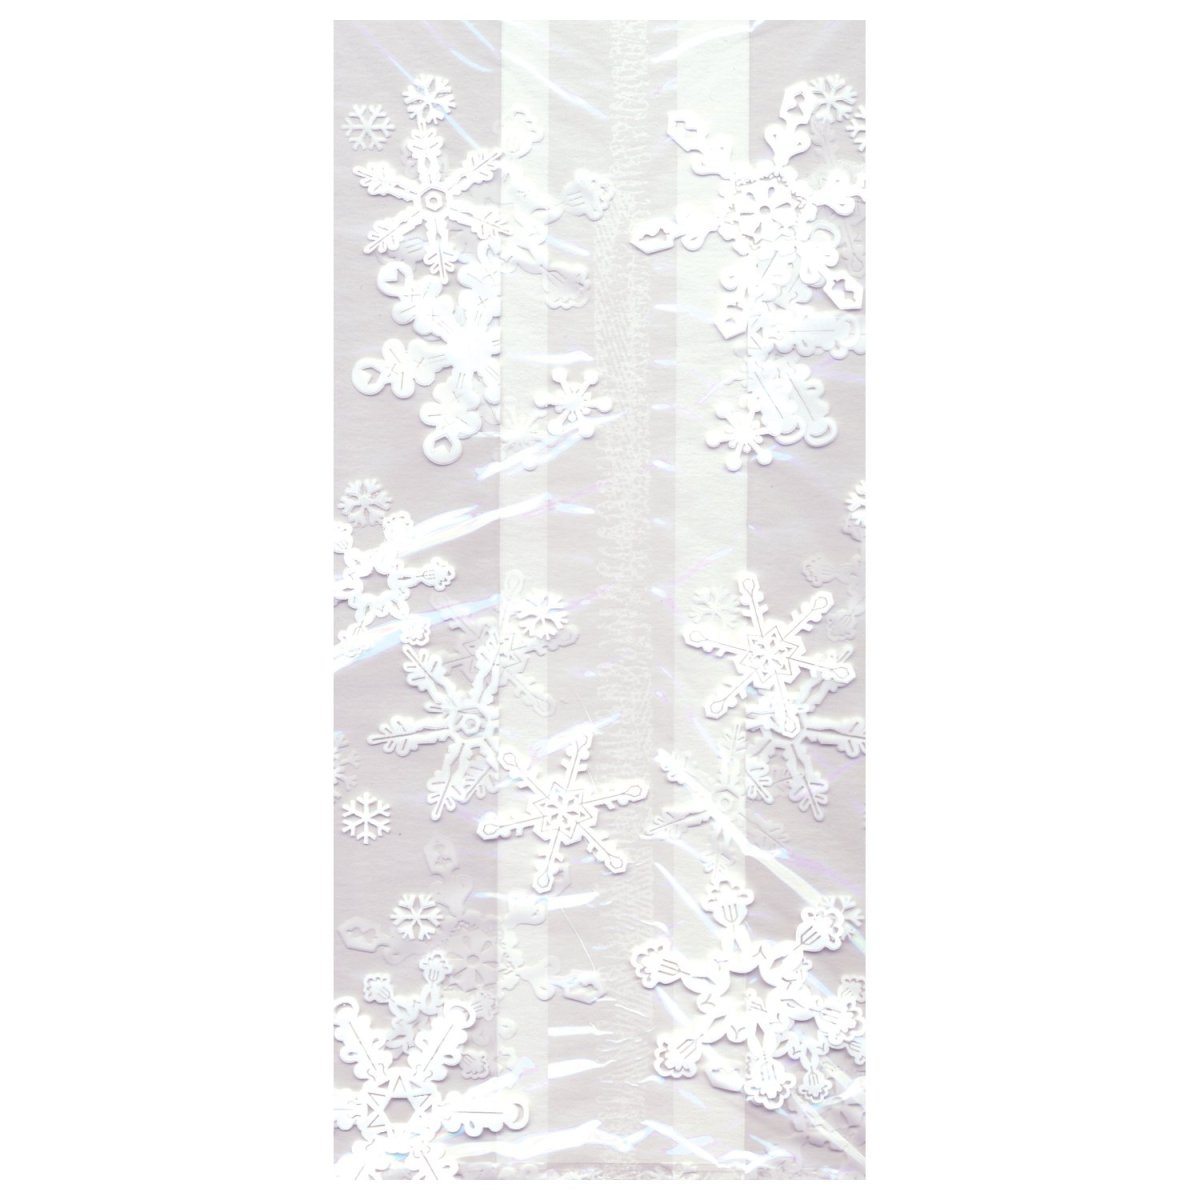 Bulk Christmas Large Cello Bags, Snowflake